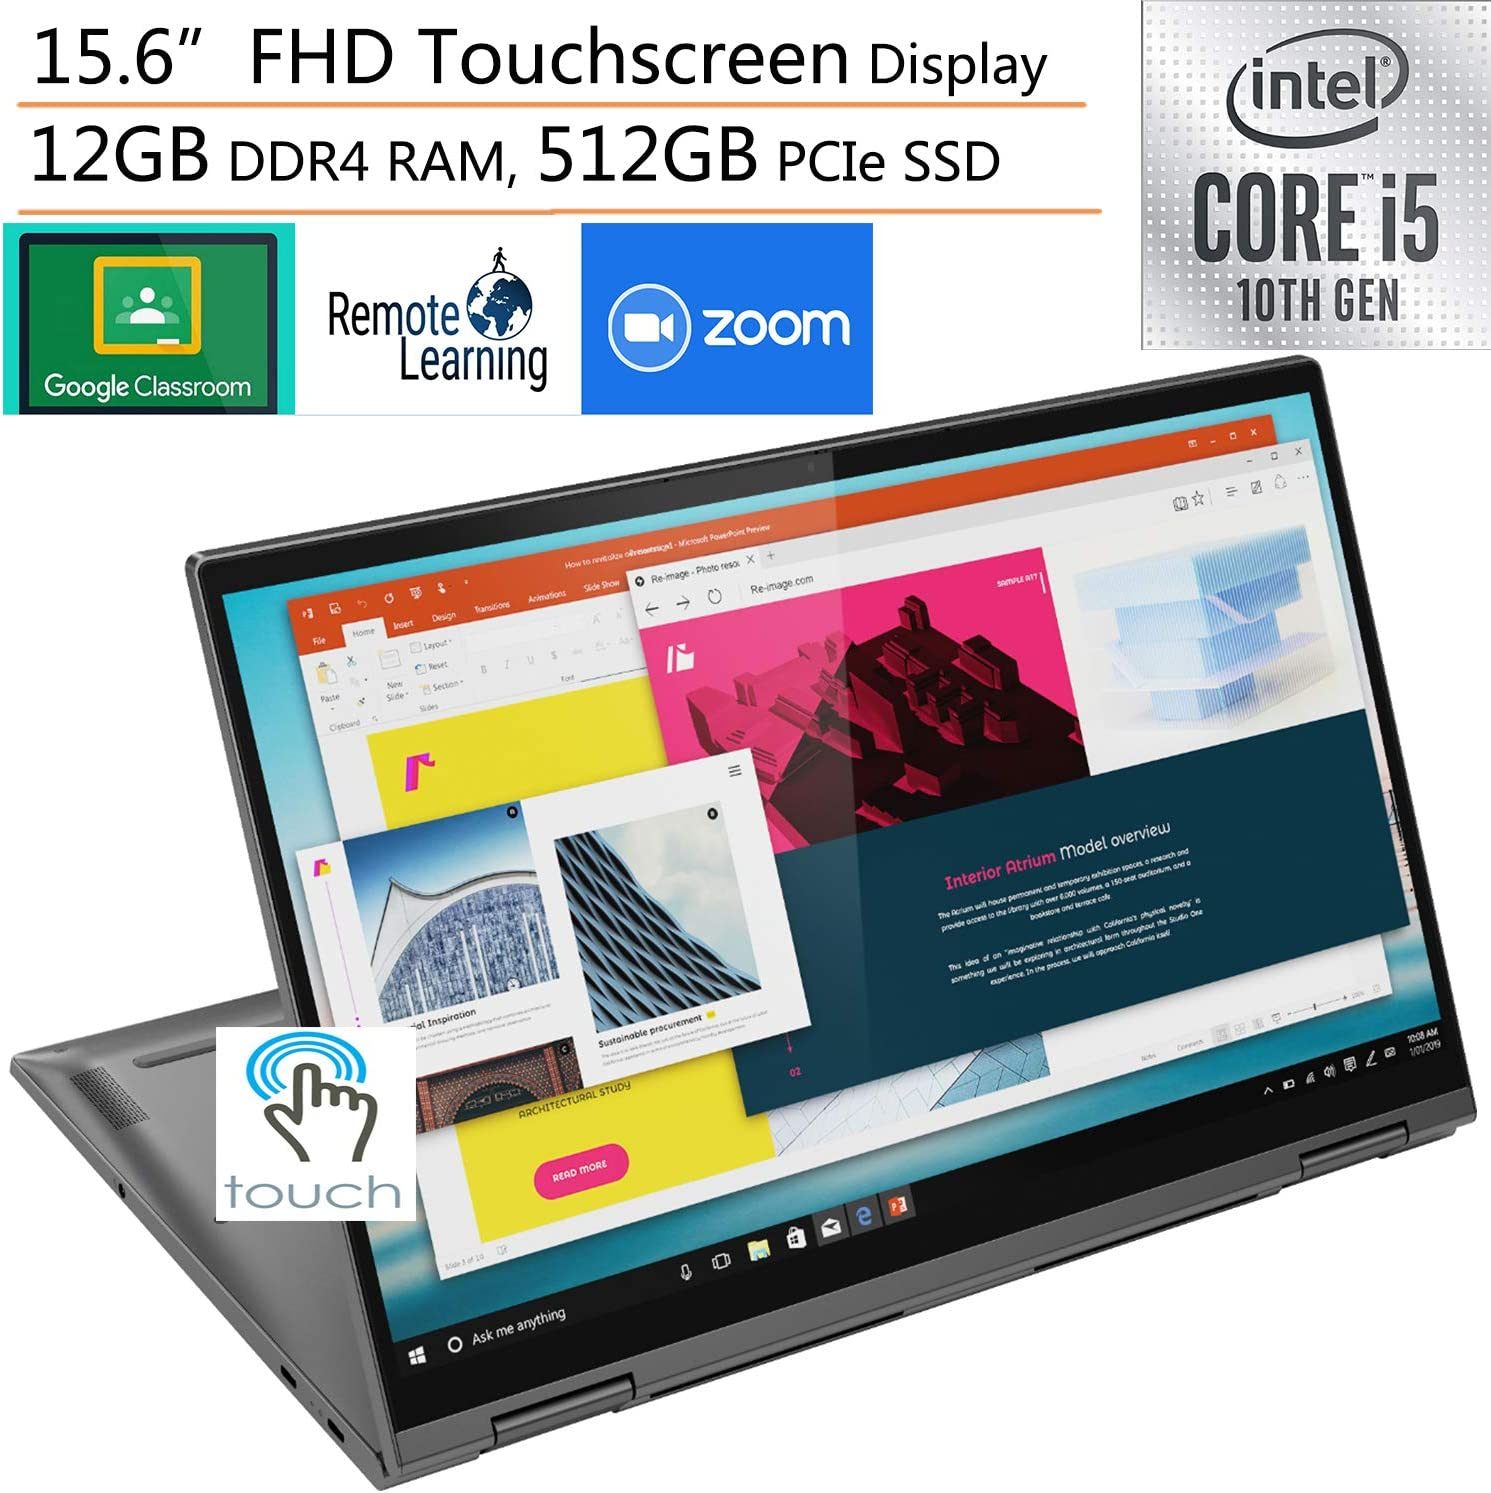 "2020 Lenovo Yoga C740 2-in-1 15.6"" FHD Touchscreen Laptop Computer, Intel Quad-Core i5-10210U (Beats i7-7500U), 12GB DDR4 RAM, 512GB PCIe SSD, Windows 10, iPuzzle External DVD, Online Class Ready"